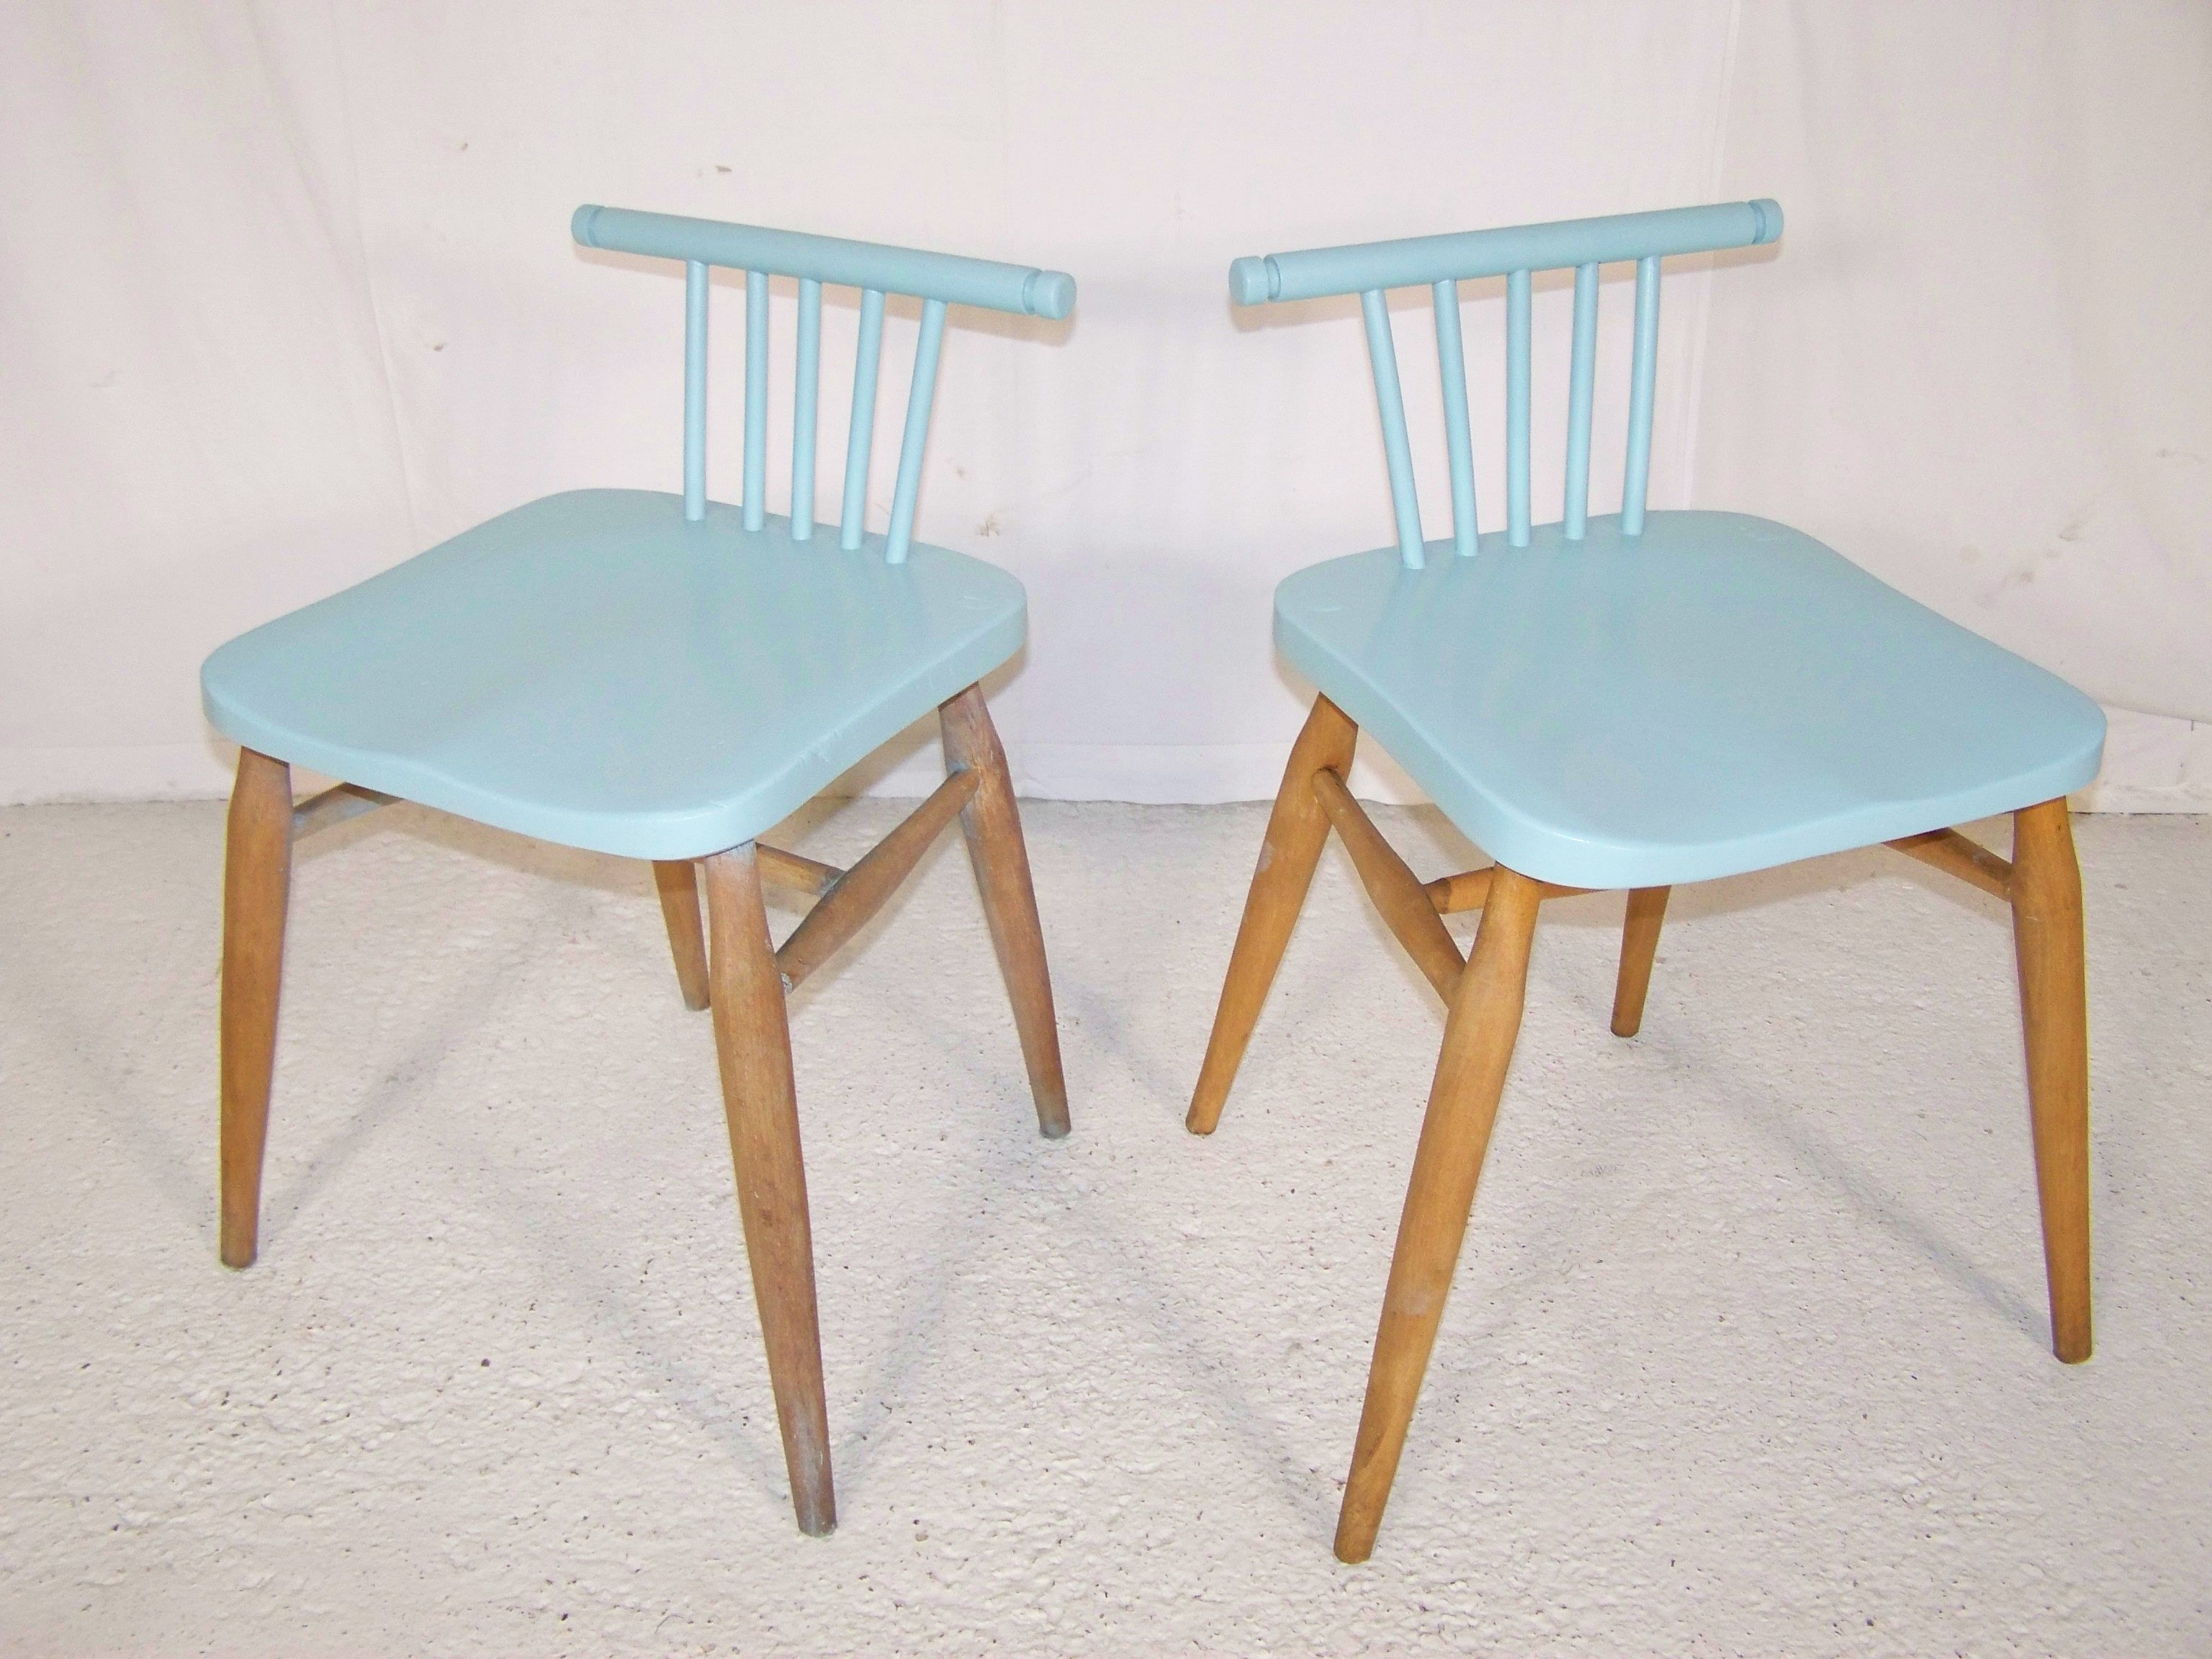 Sgabello Antico ~ Reworked vintage 50s ercol elm chairs chairs & armchairs כסאות